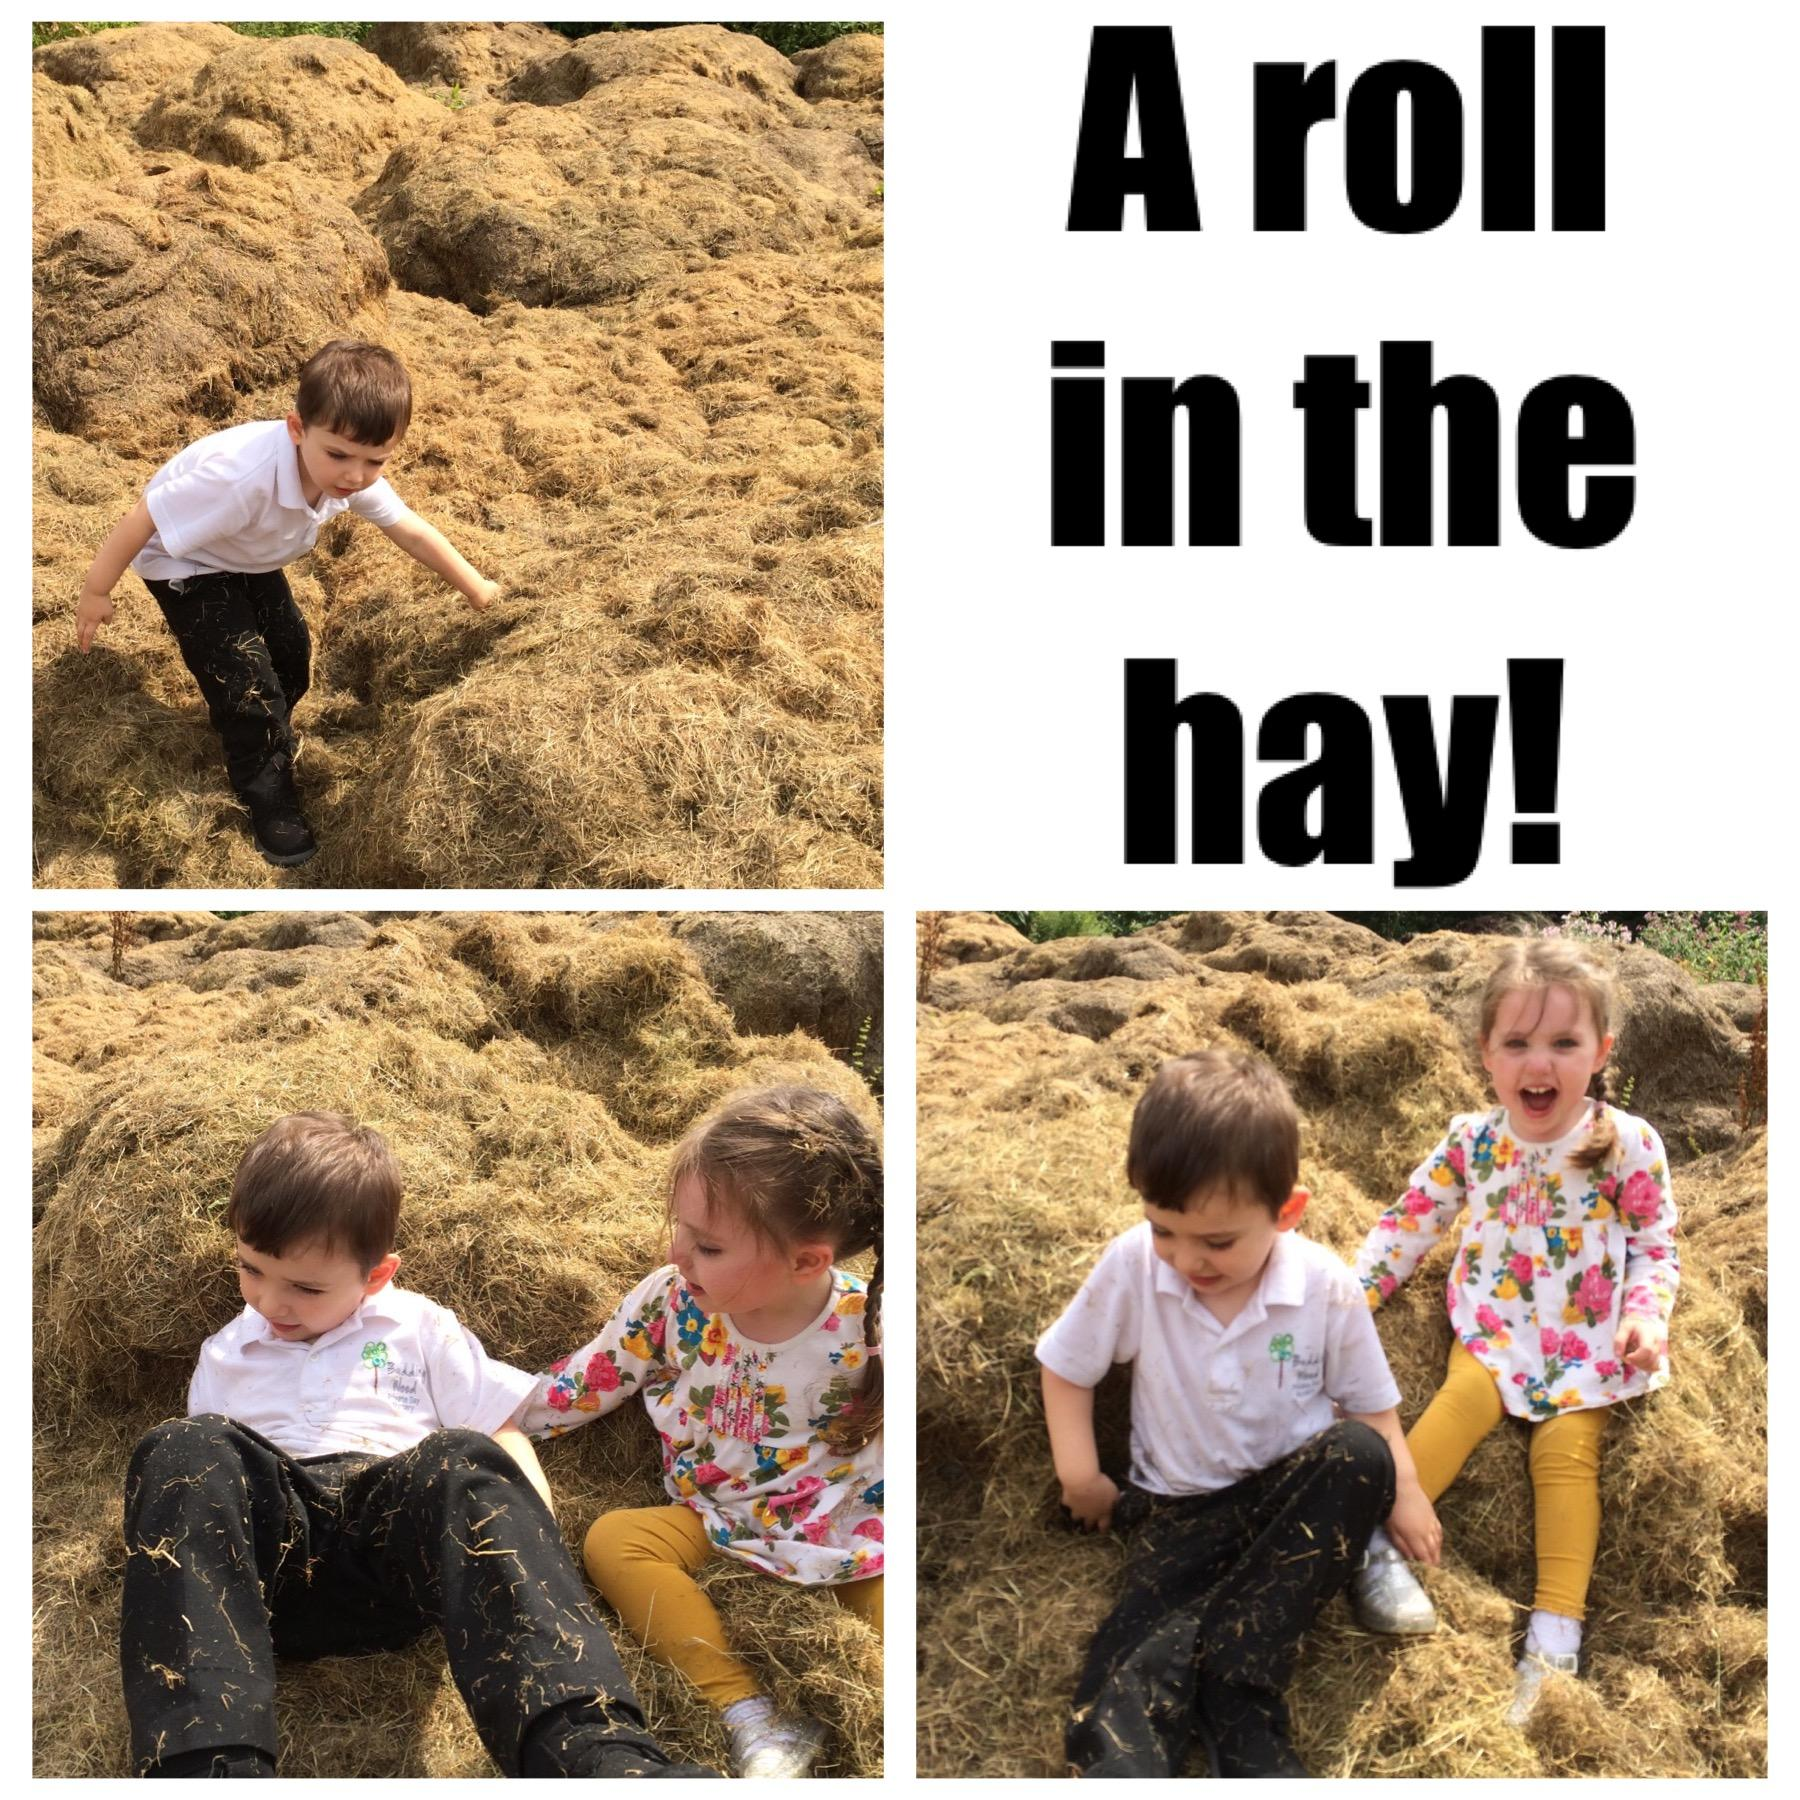 The kids having their first ever roll in the hay